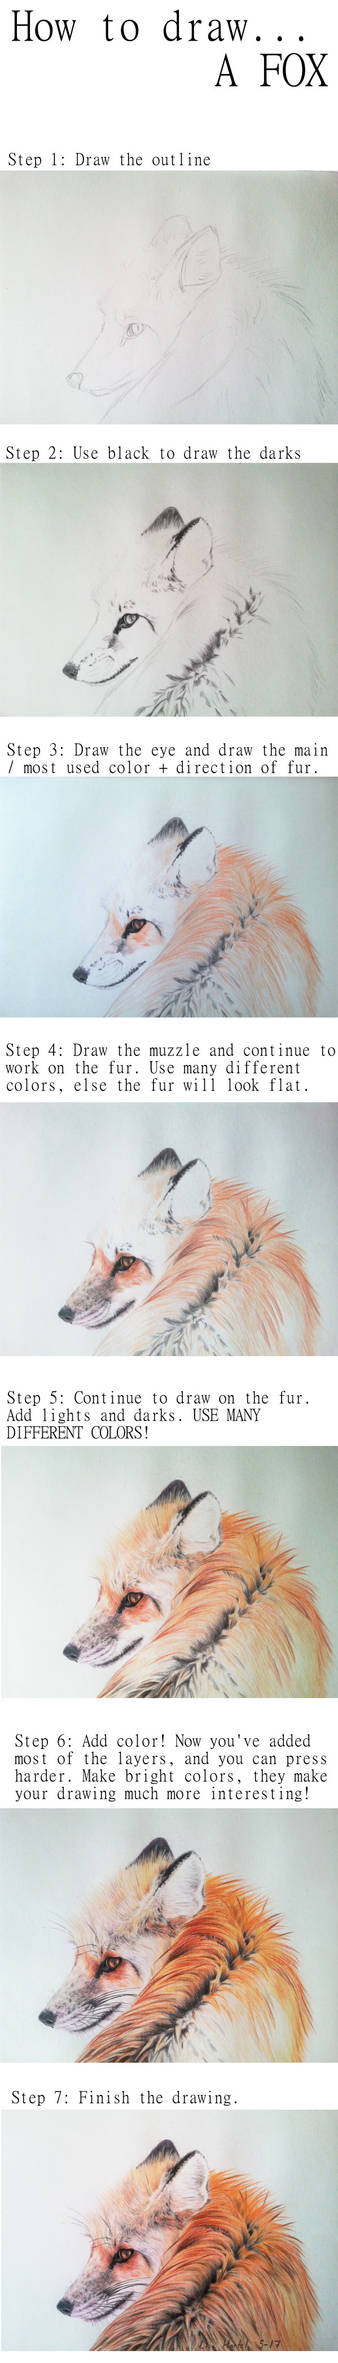 How to draw a fox portrait / WIPs for Looking back